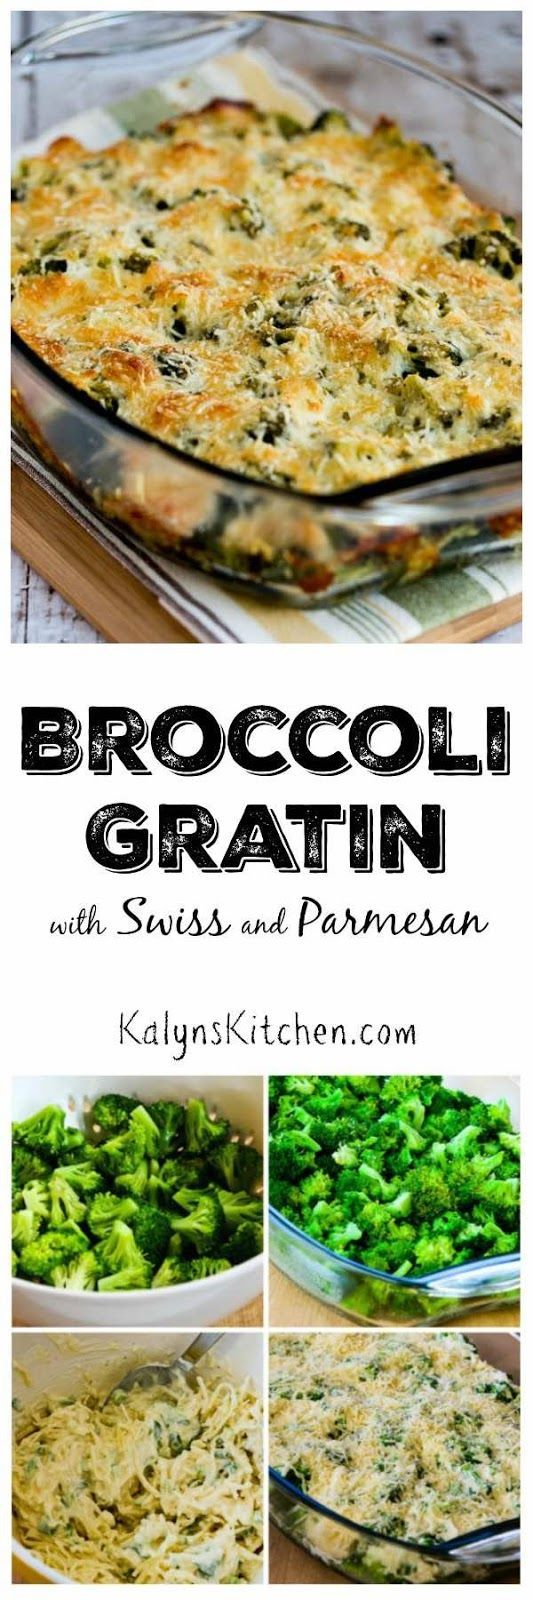 One of my family's favorite holiday side dishes is this low-carb and gluten-free Broccoli Gratin with Swiss and Parmesan. This is so delicious and it's easy enough to make for a week-night dinner.  [found on KalynsKitchen.com]